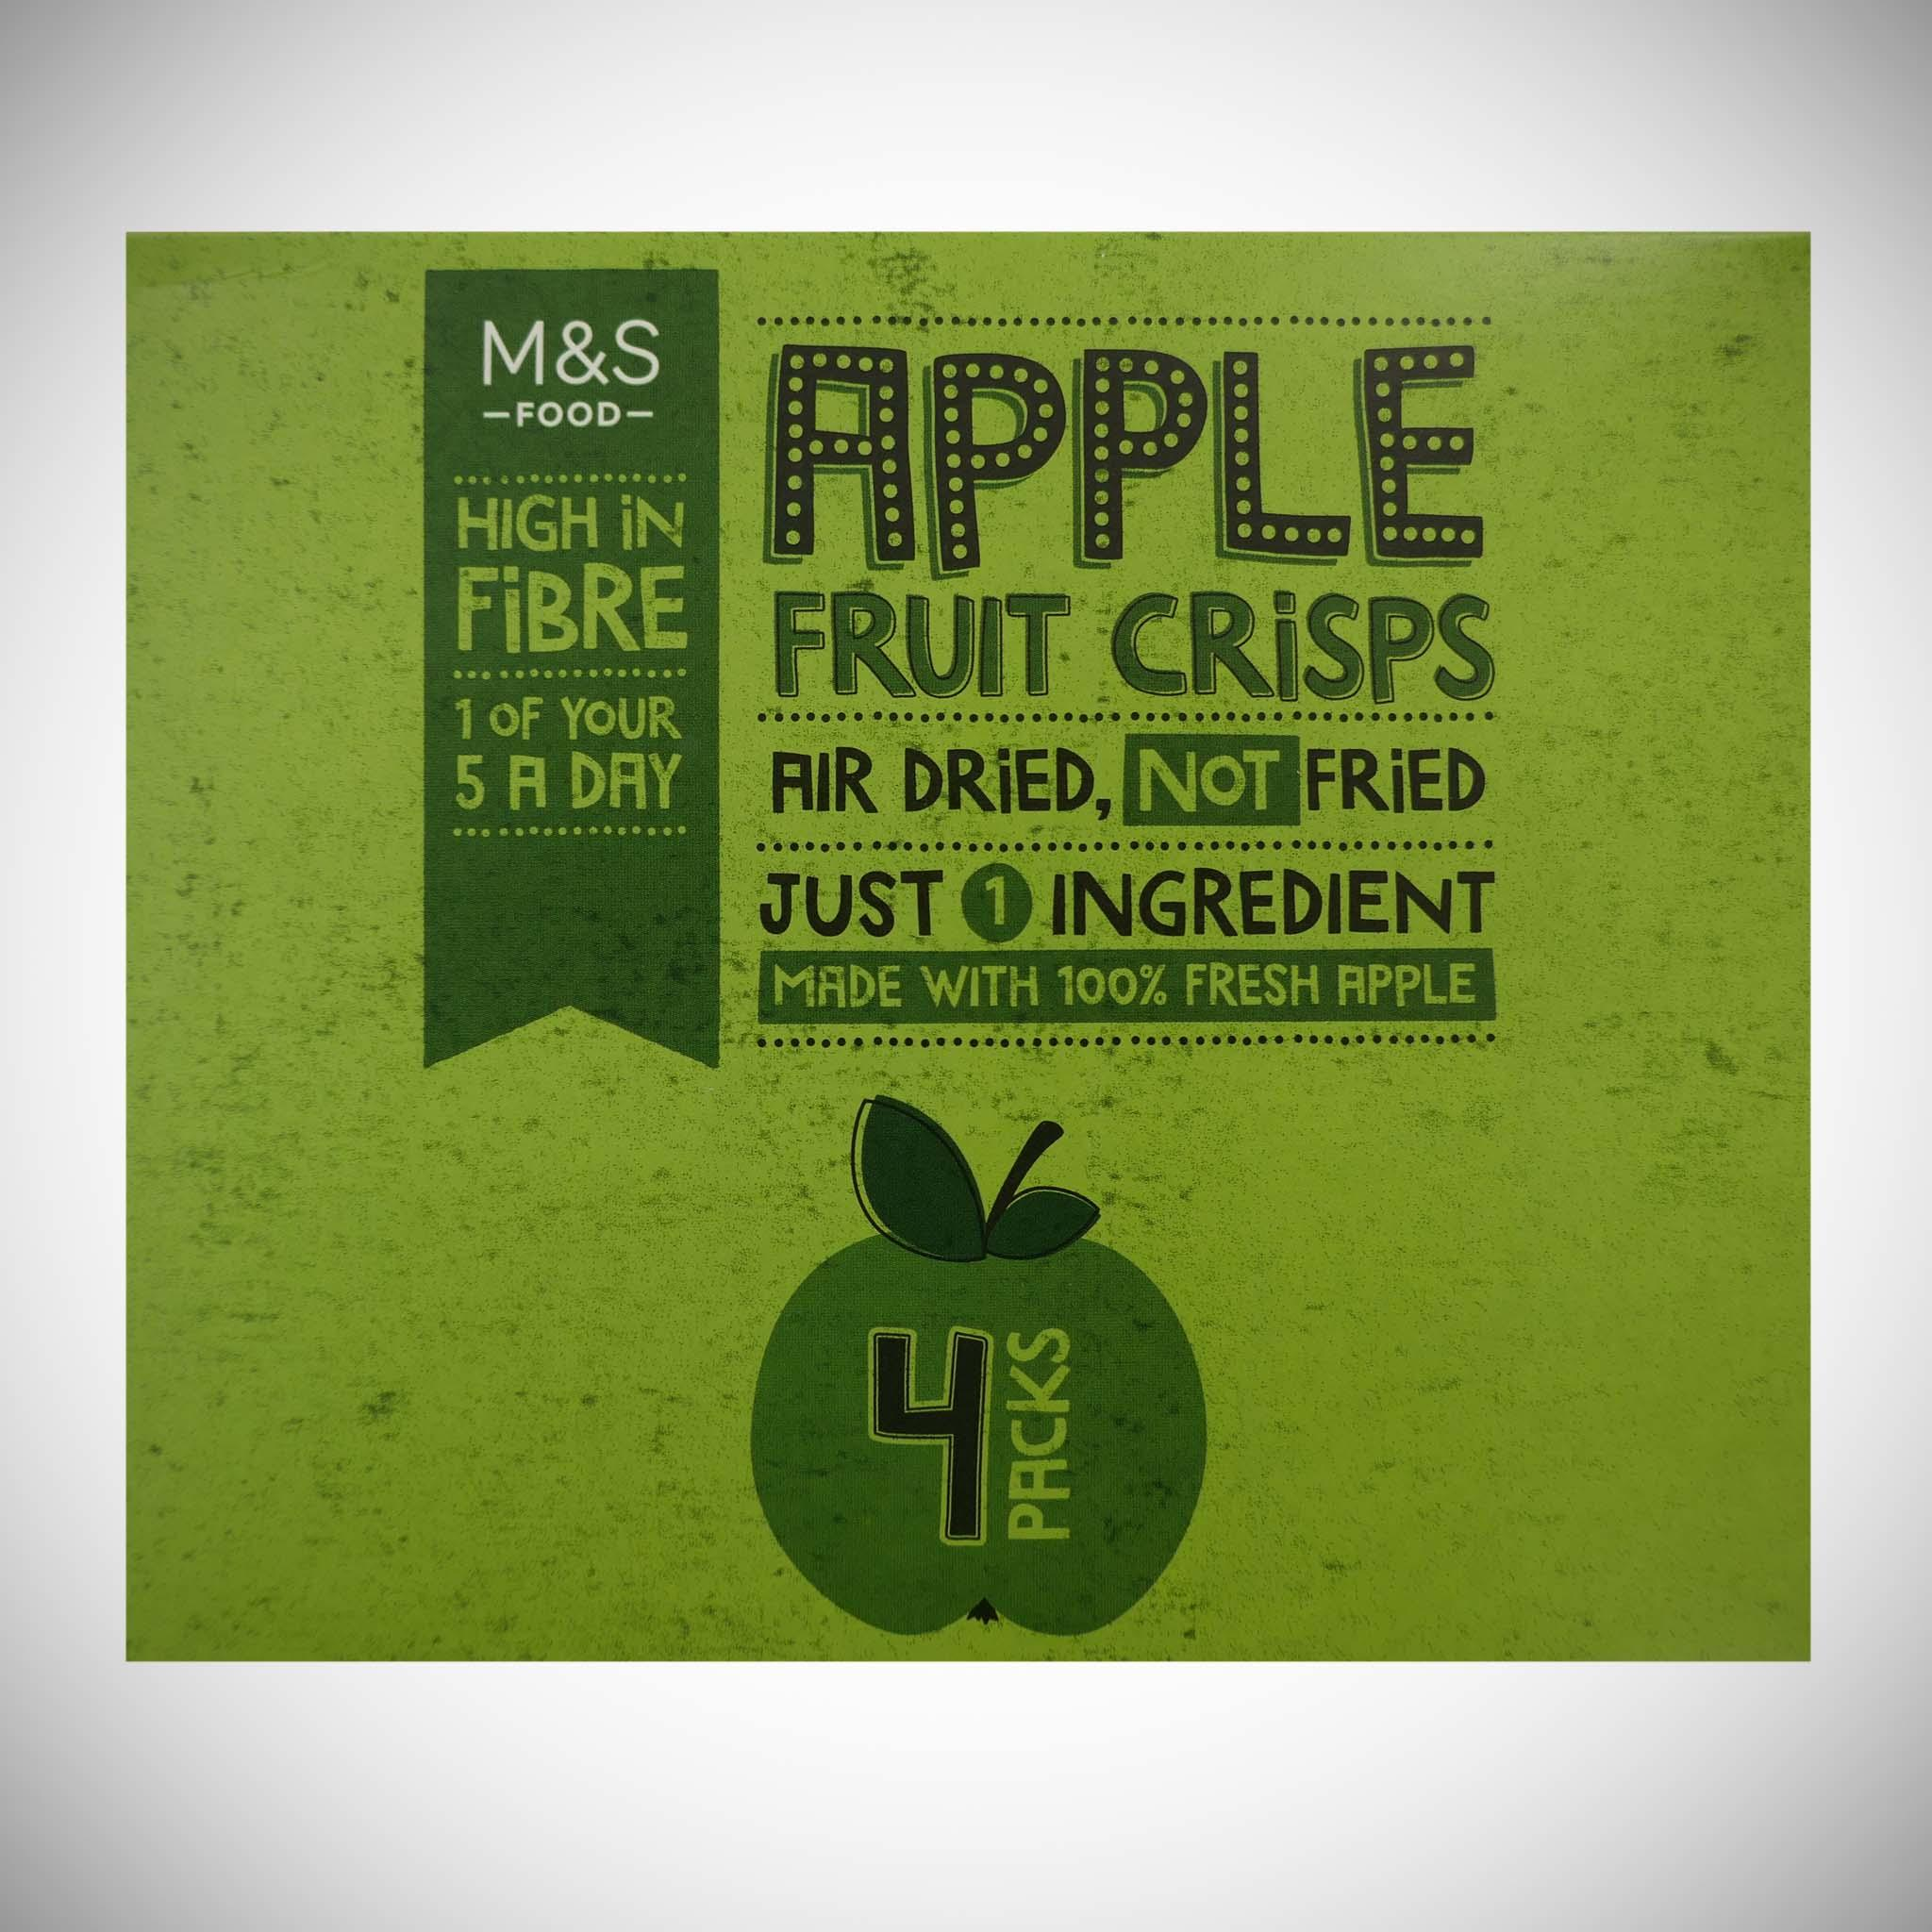 Apple Fruit Crisps